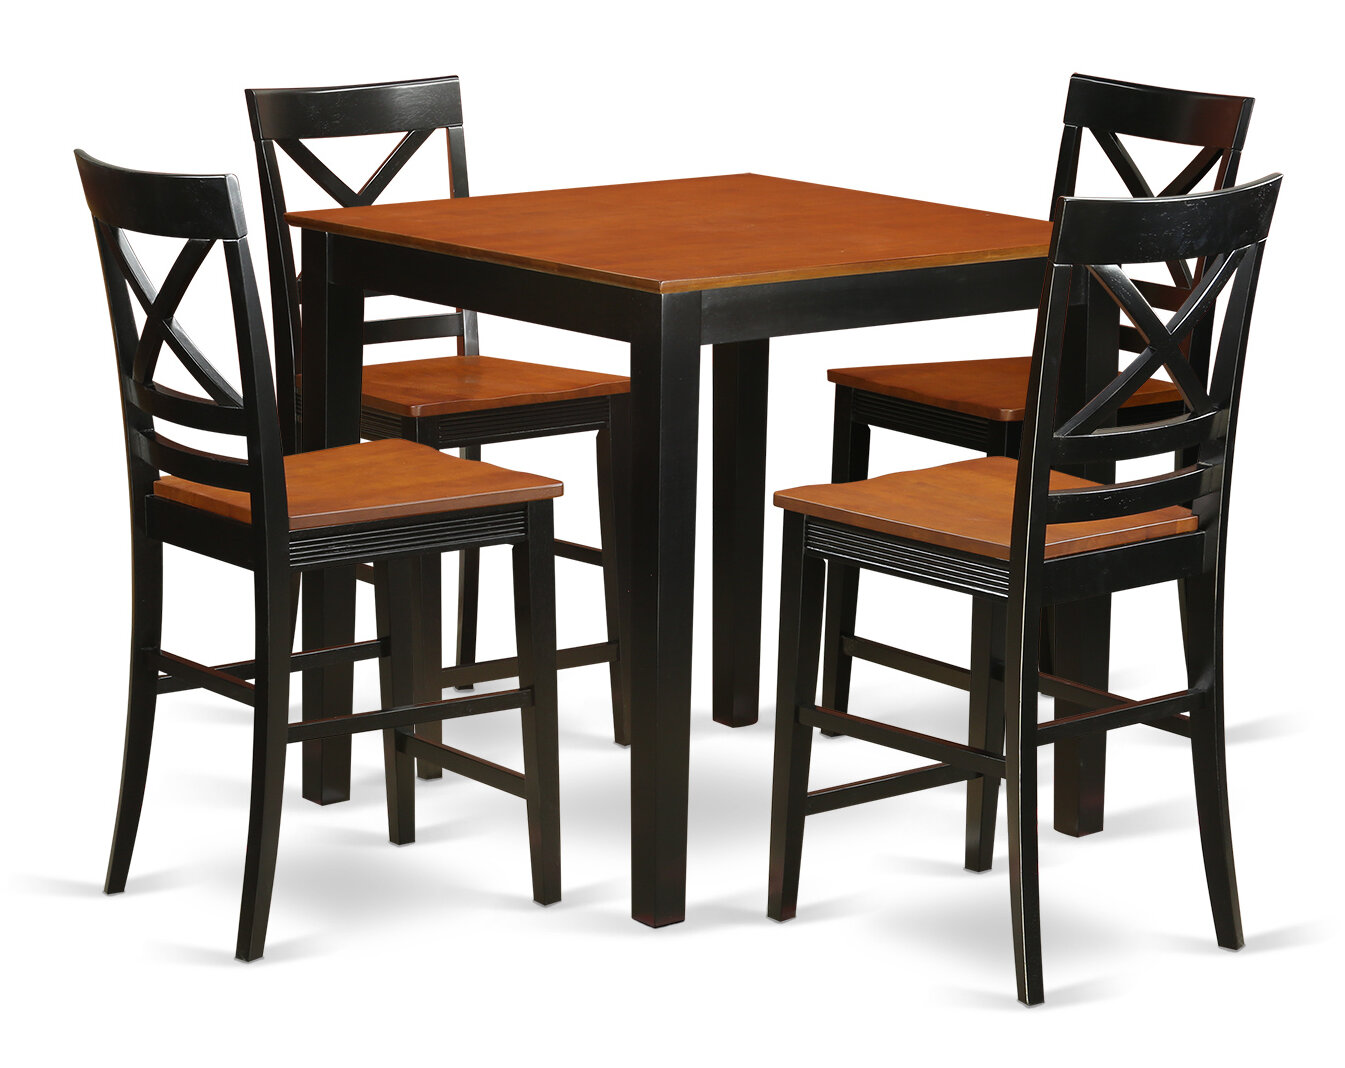 East West 5 Piece Counter Height Rubberwood Solid Wood Dining Set Reviews Wayfair